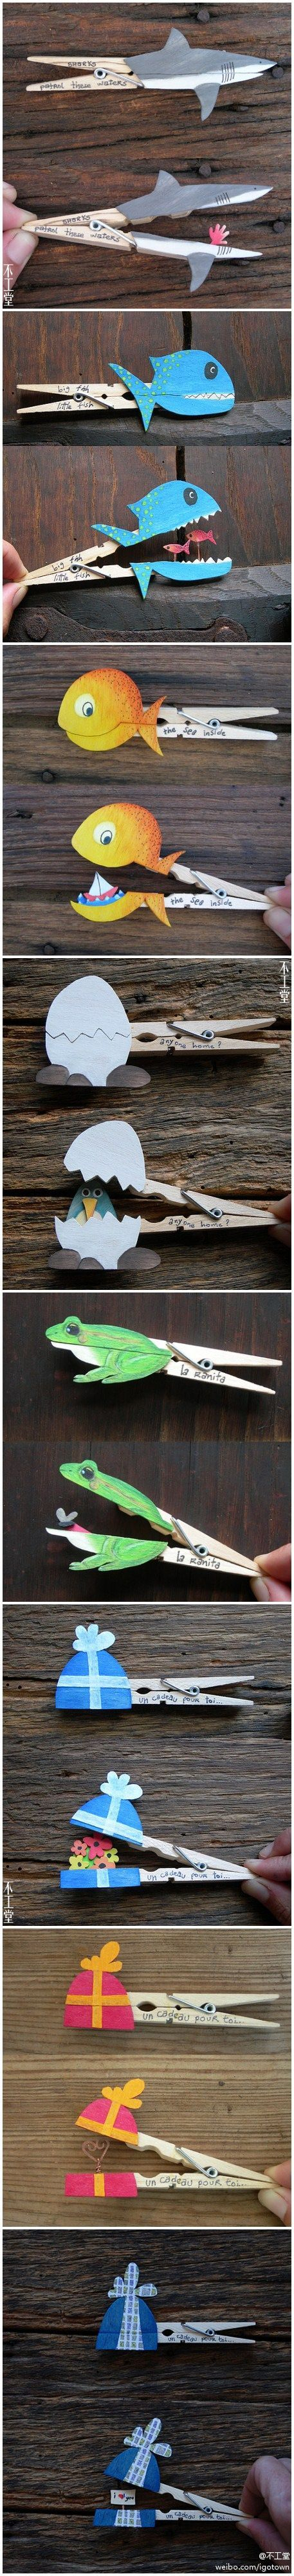 clothespin animals - #kids #craft #summer #diy